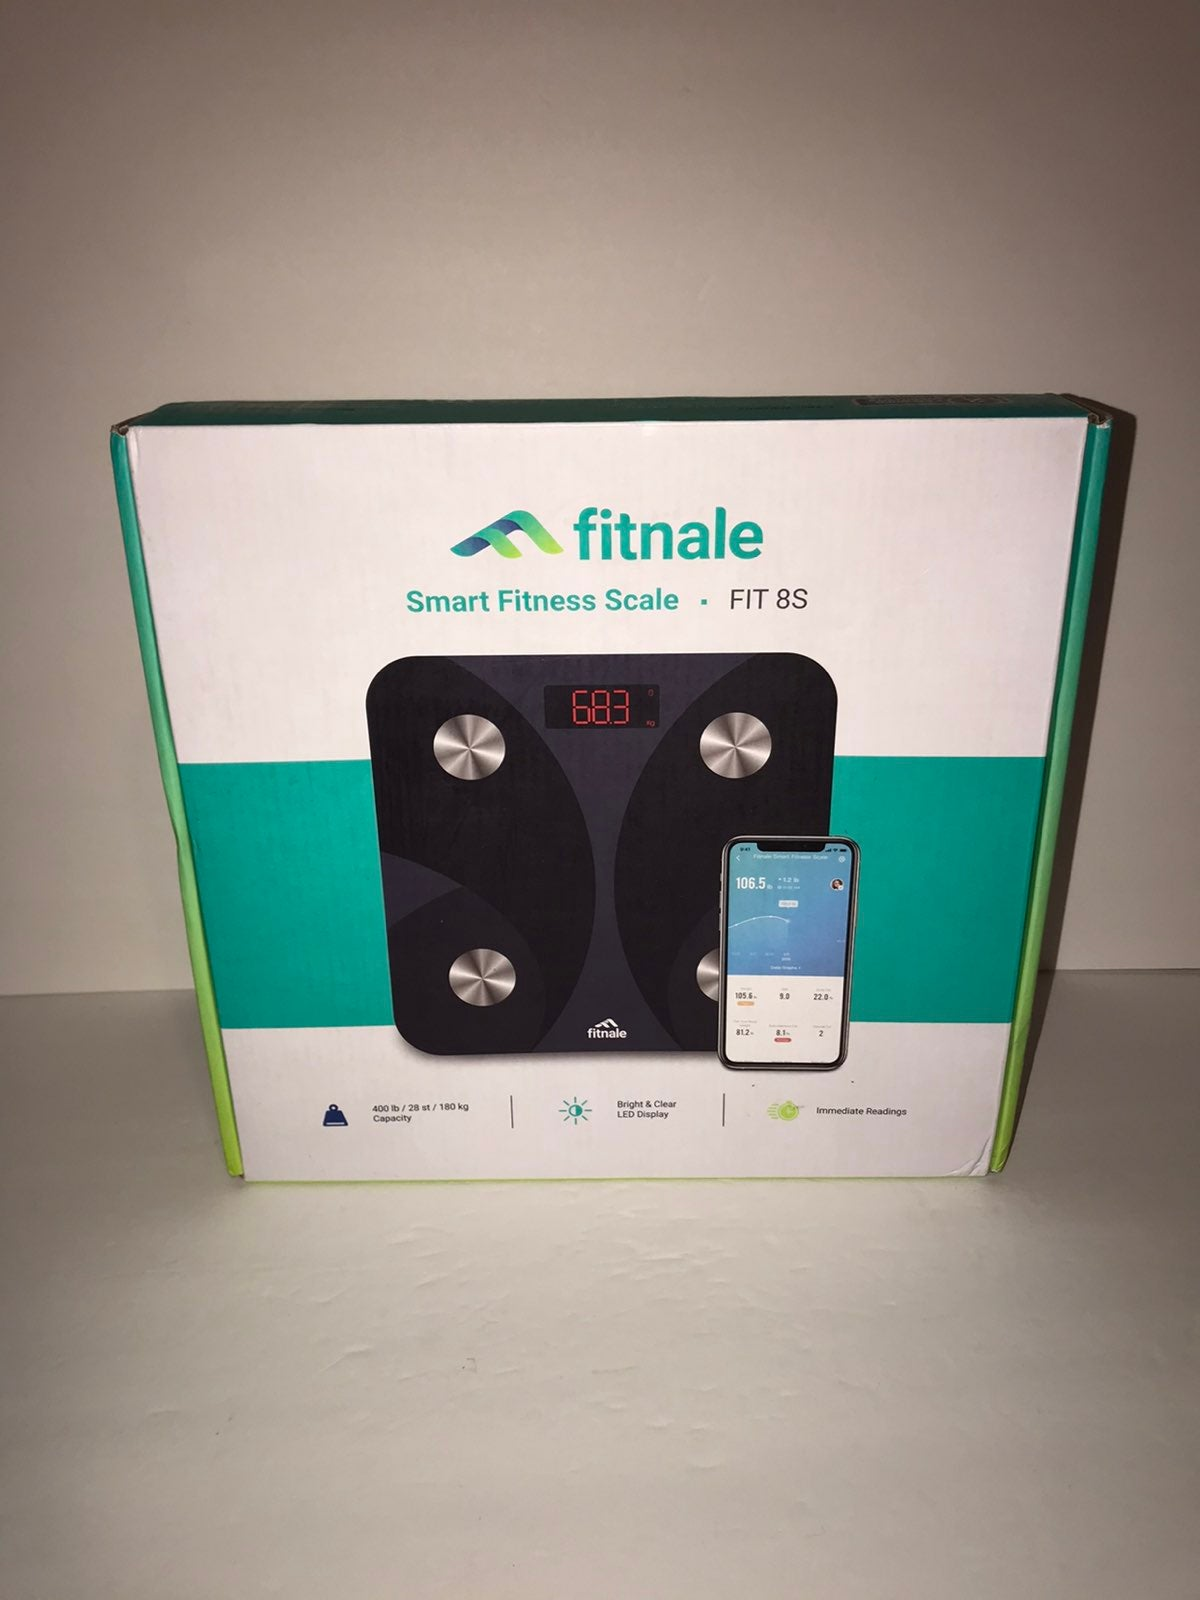 Fitnale Smart Fitness Scale